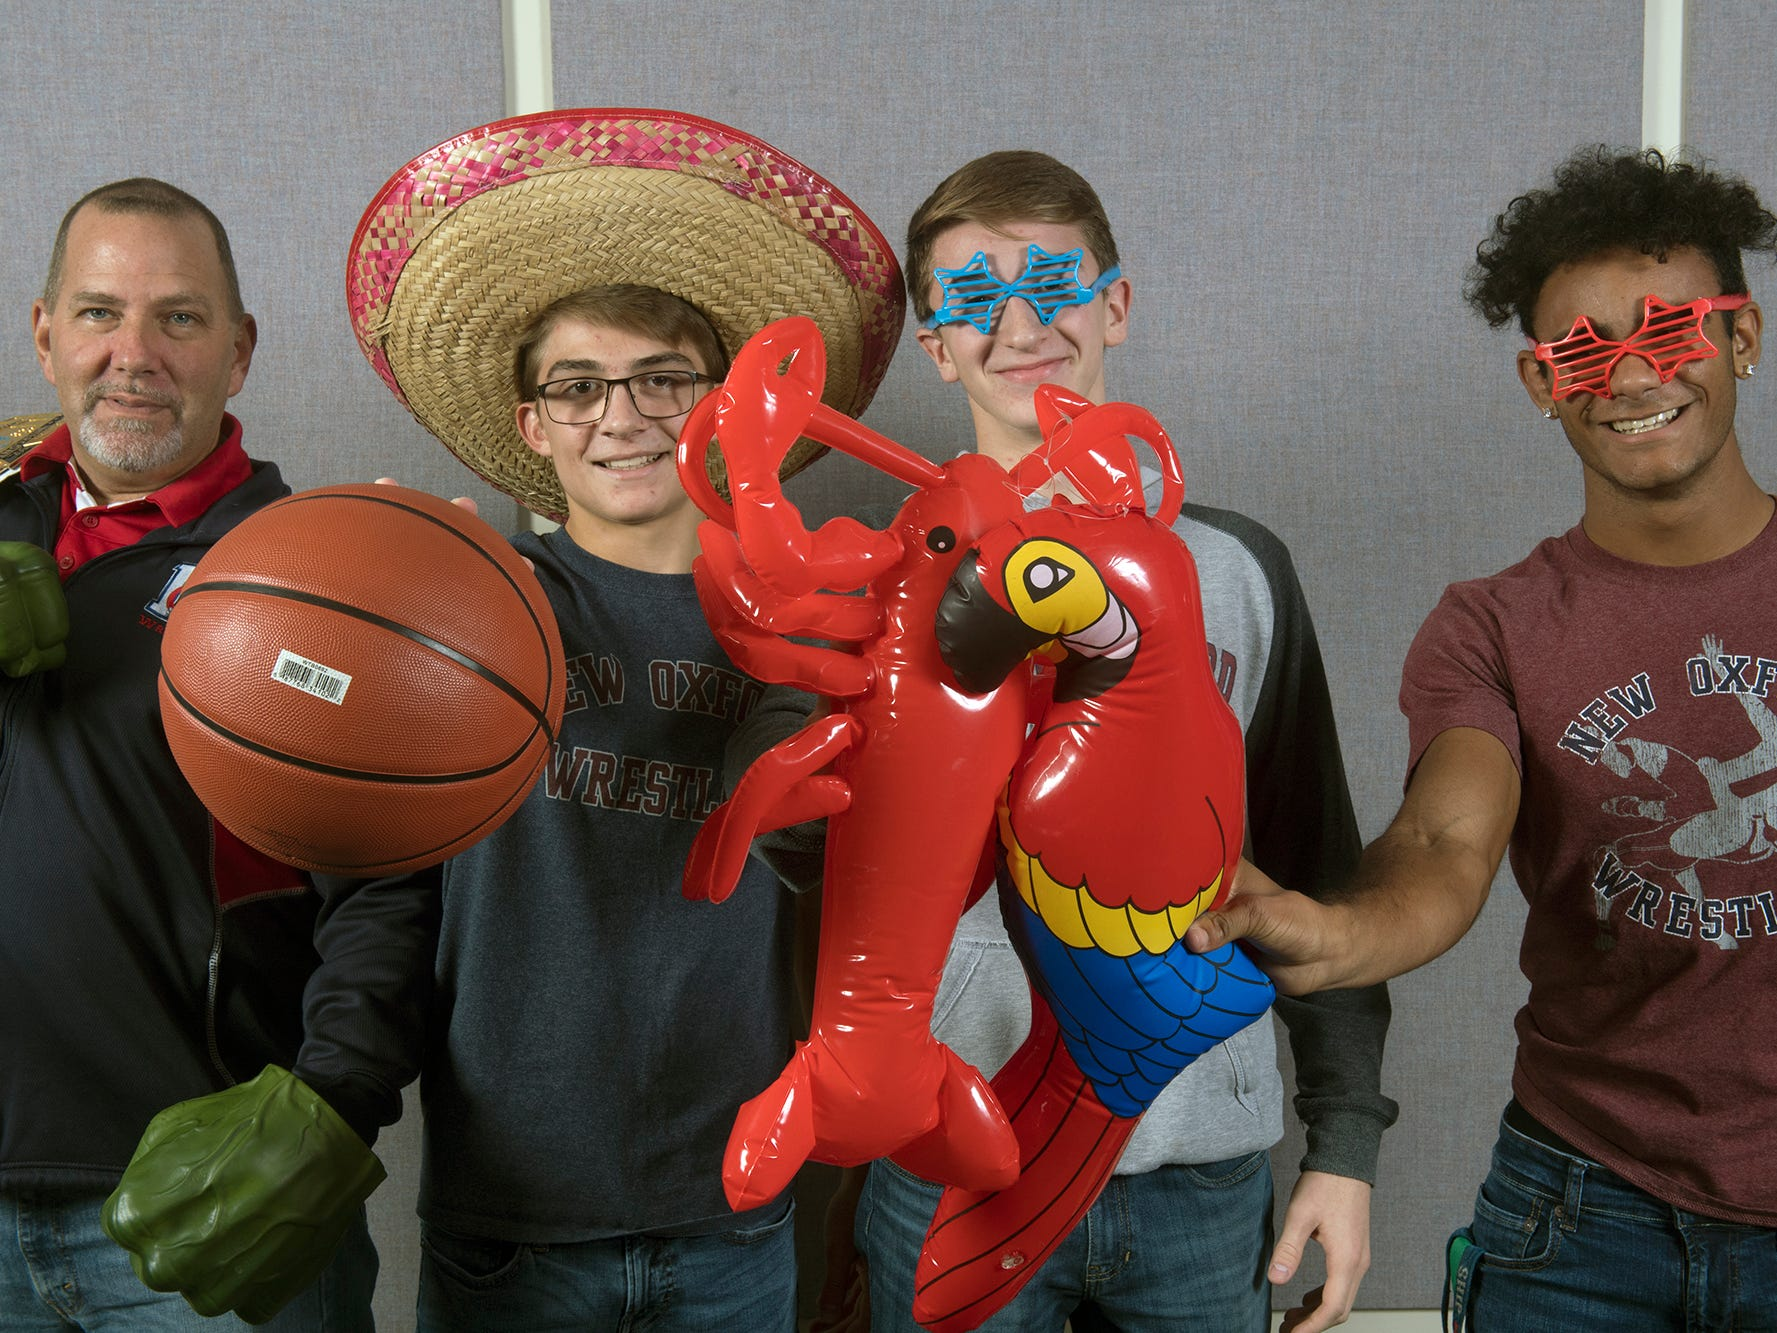 From the left, Coach Brian Martin, Tim Uhler, Jared Bair and J.J. Johnson, of the New Oxford wrestling team, pose during the 2018-19 GameTimePa YAIAA Winter Media Day Sunday November 11, 2018.